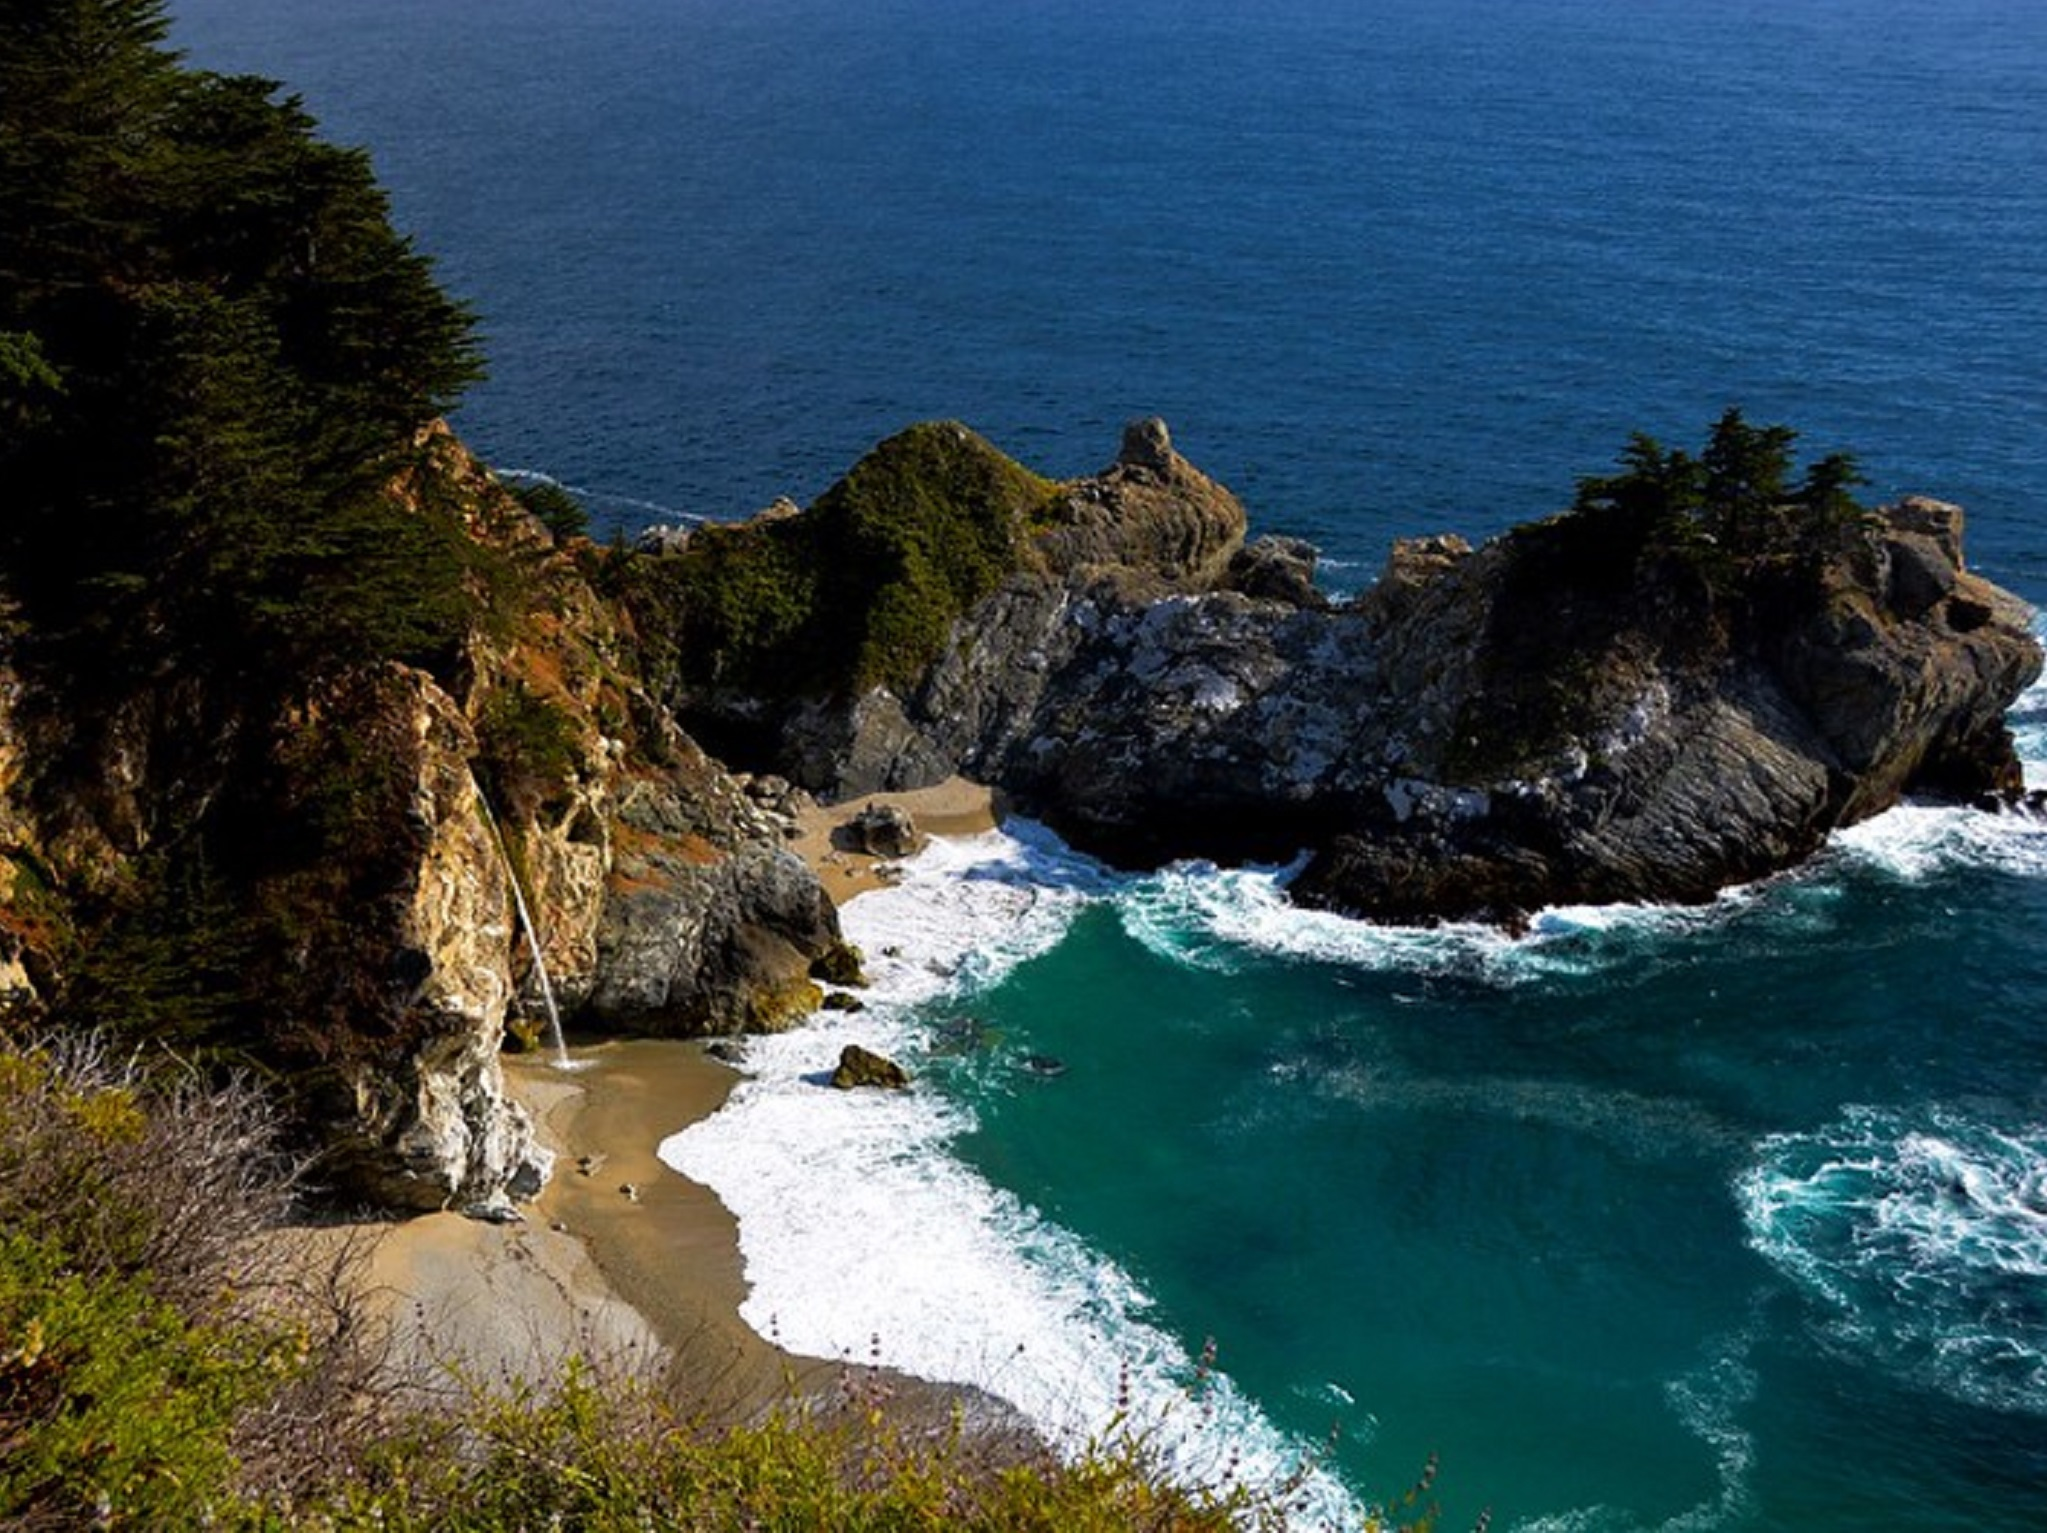 The Pacific ocean with tall cliffs